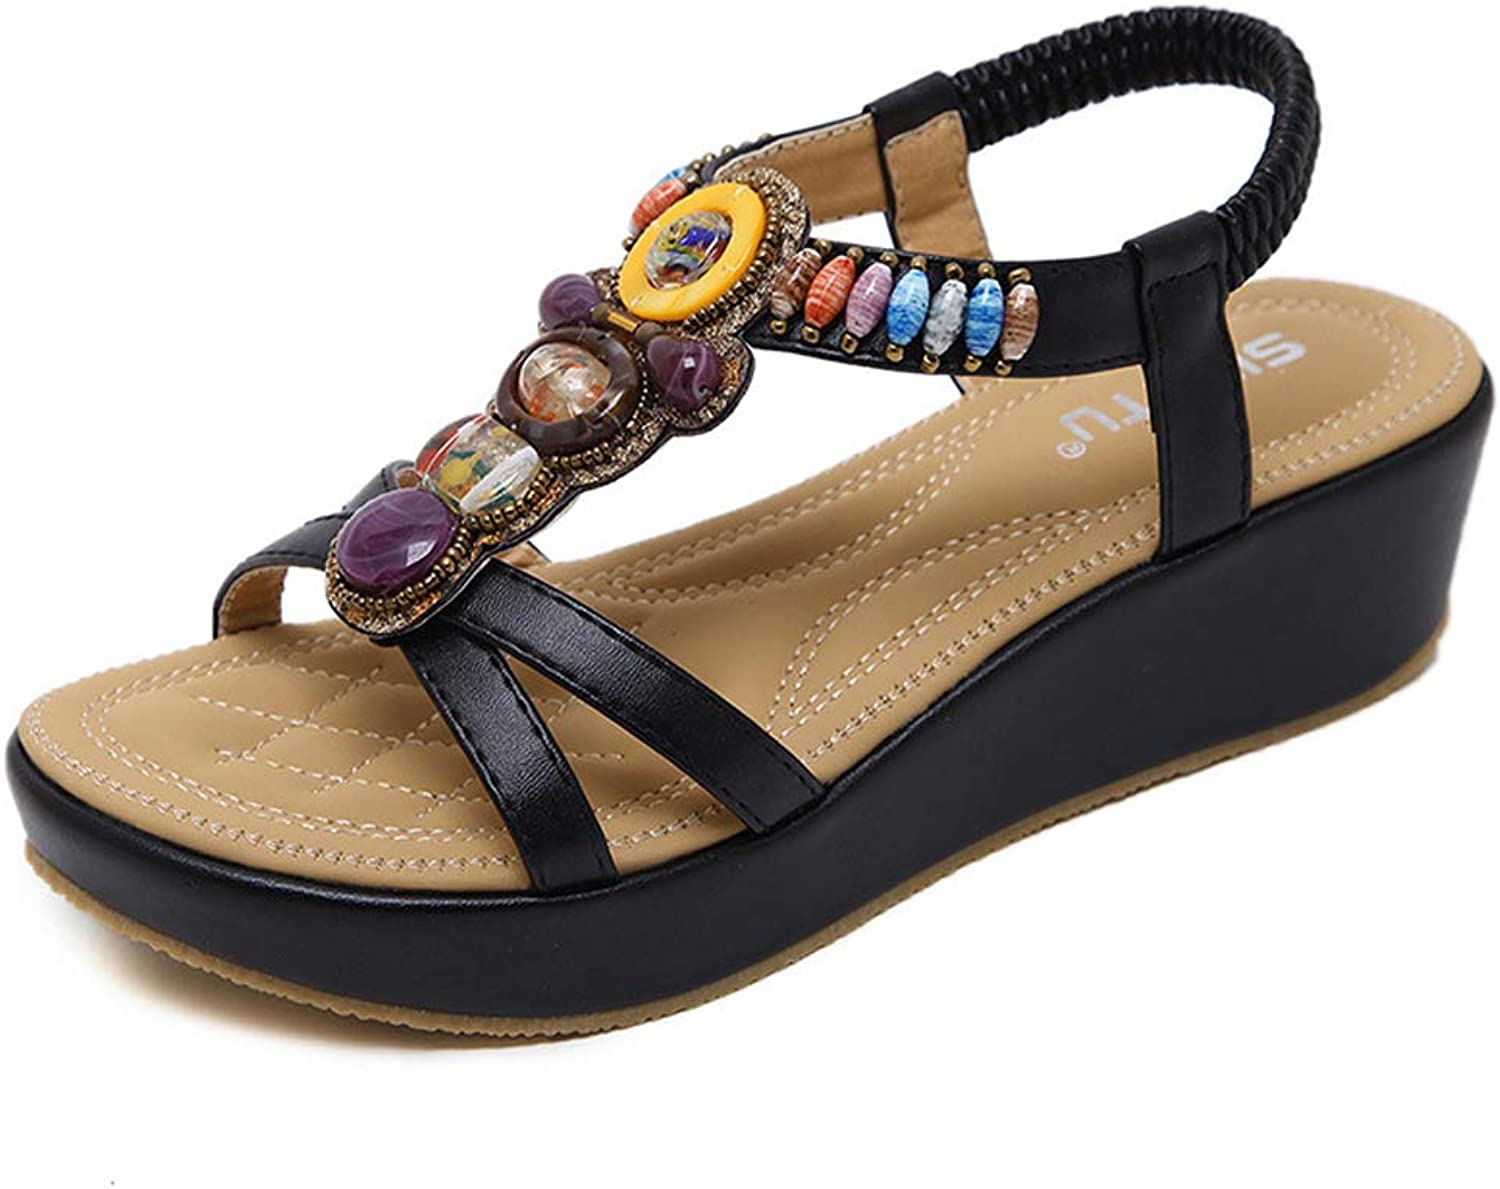 Tuoup Women's Beaded Leather Outdoor Sandles Ladies Sandals